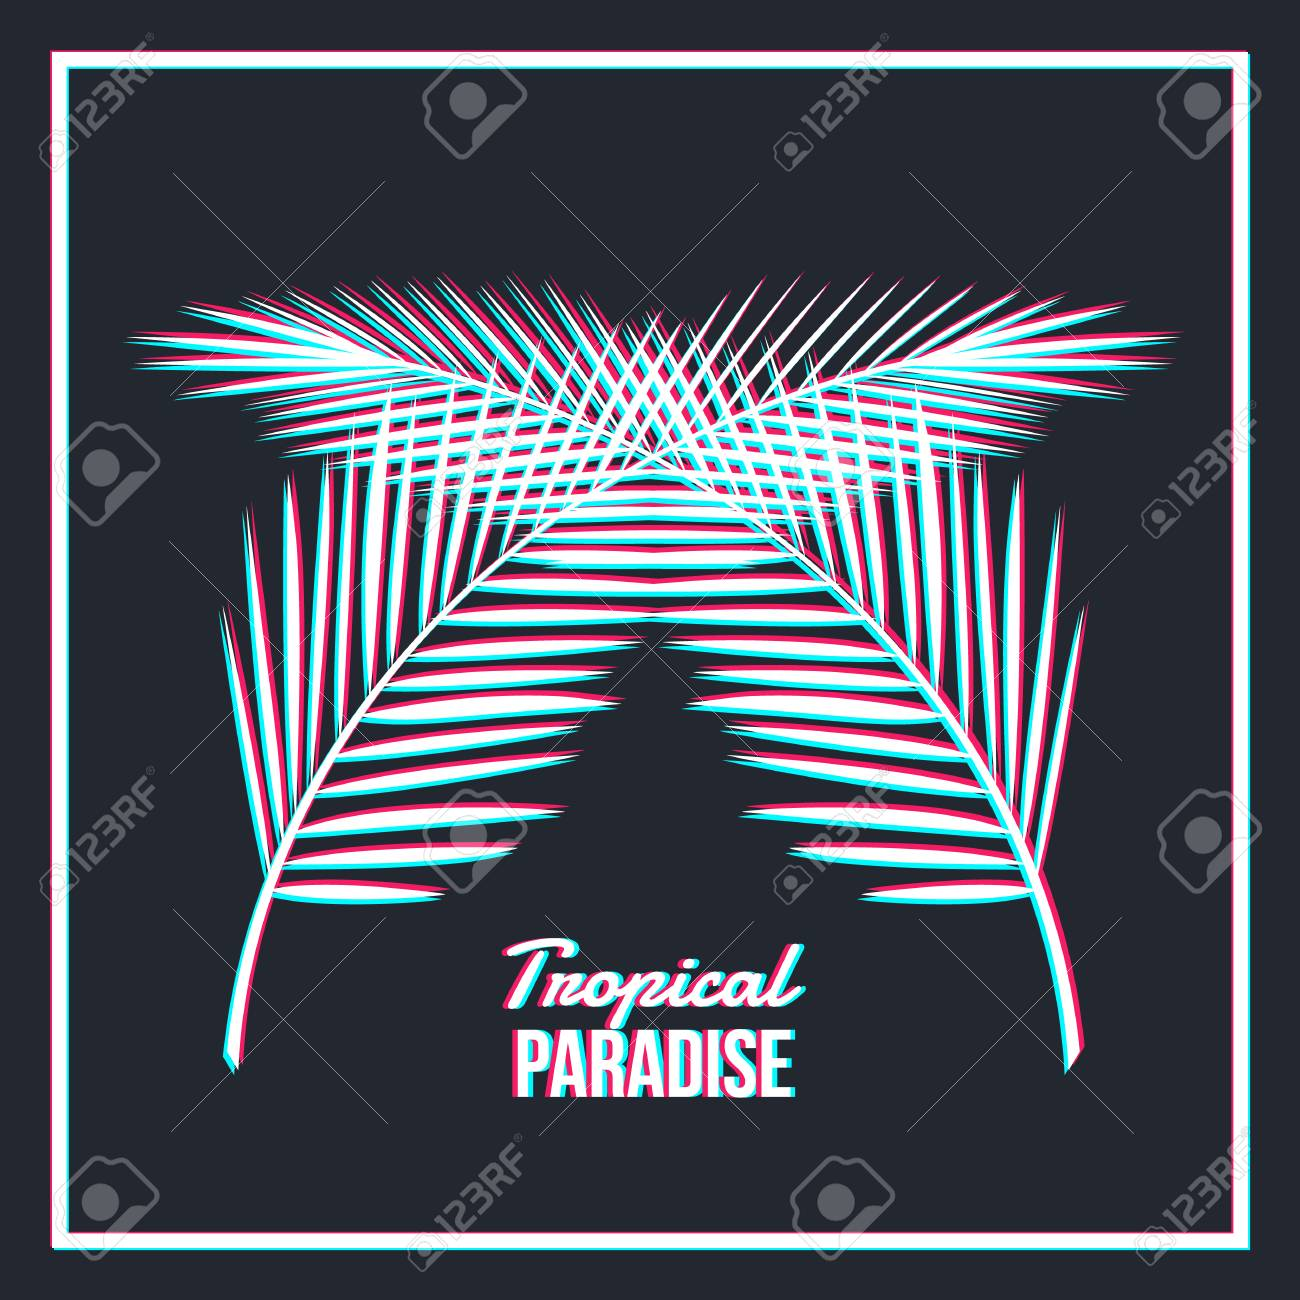 e9e60615d Tropical Paradise - palm leaves with glitch isolated on black background.  Trendy Vector illustration Stock